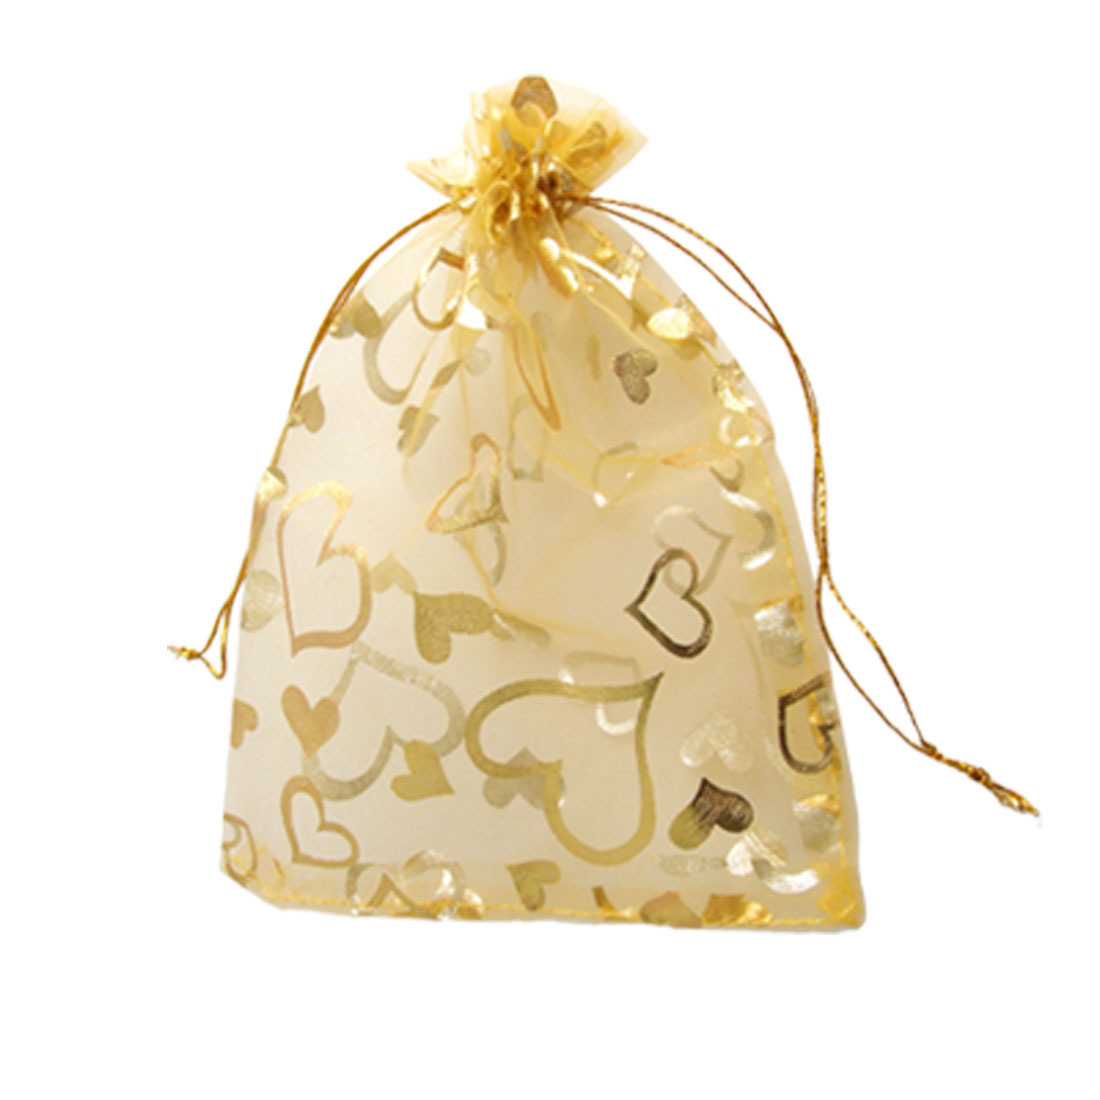 5 Pcs Heart Pattern Wedding Gift Bag Organza Pouch Gold Tone